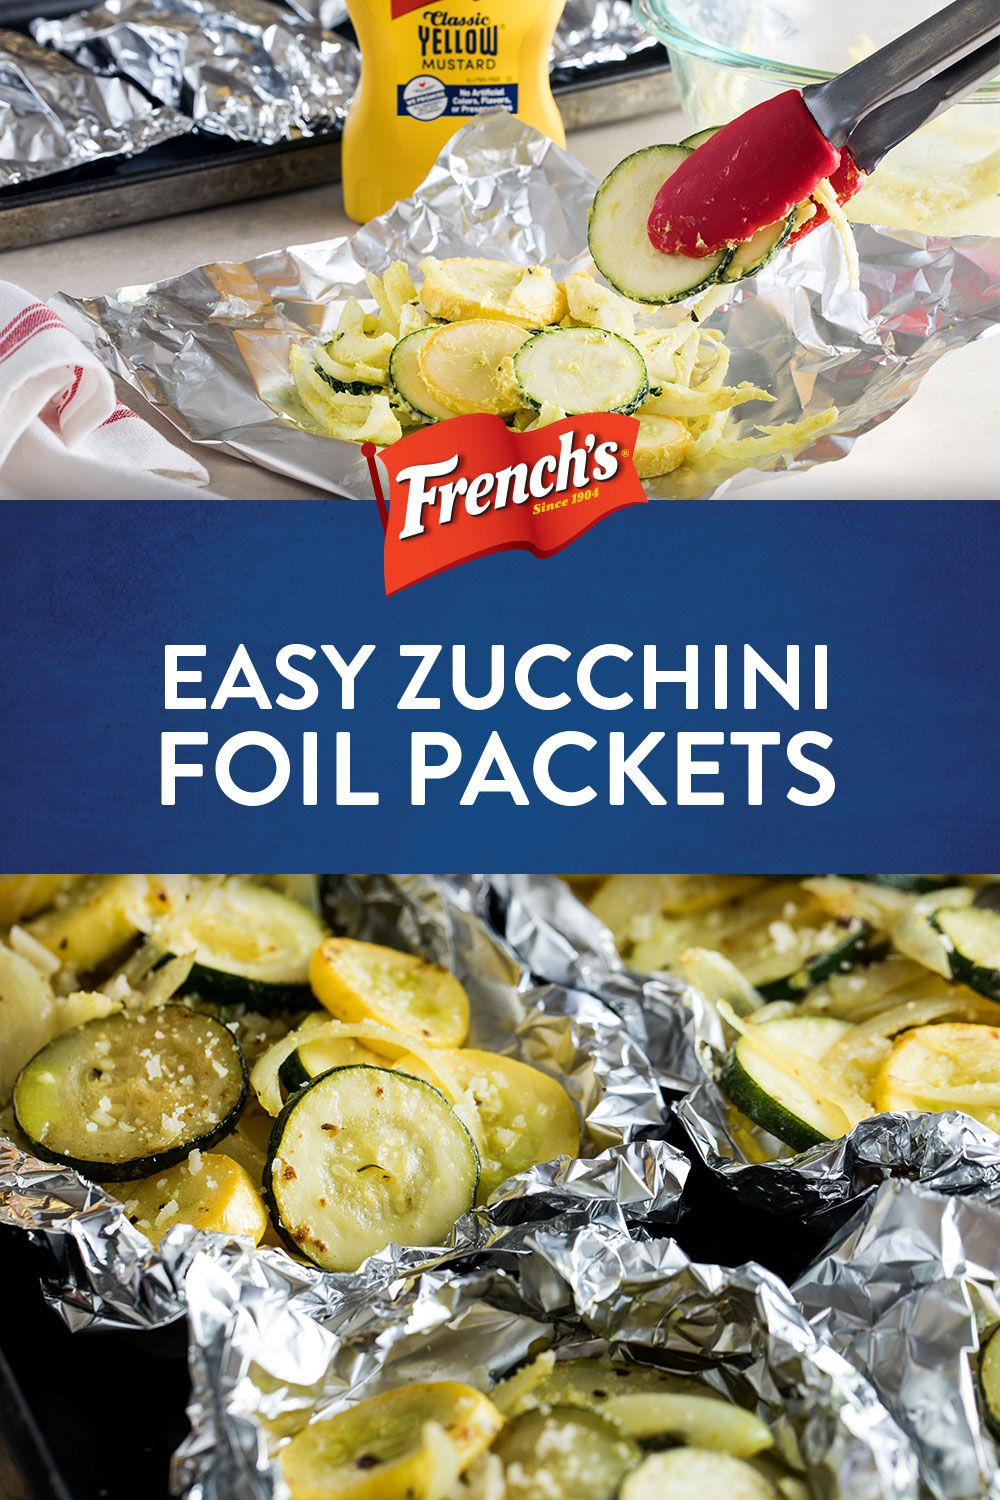 Easy Zucchini Foil Packets